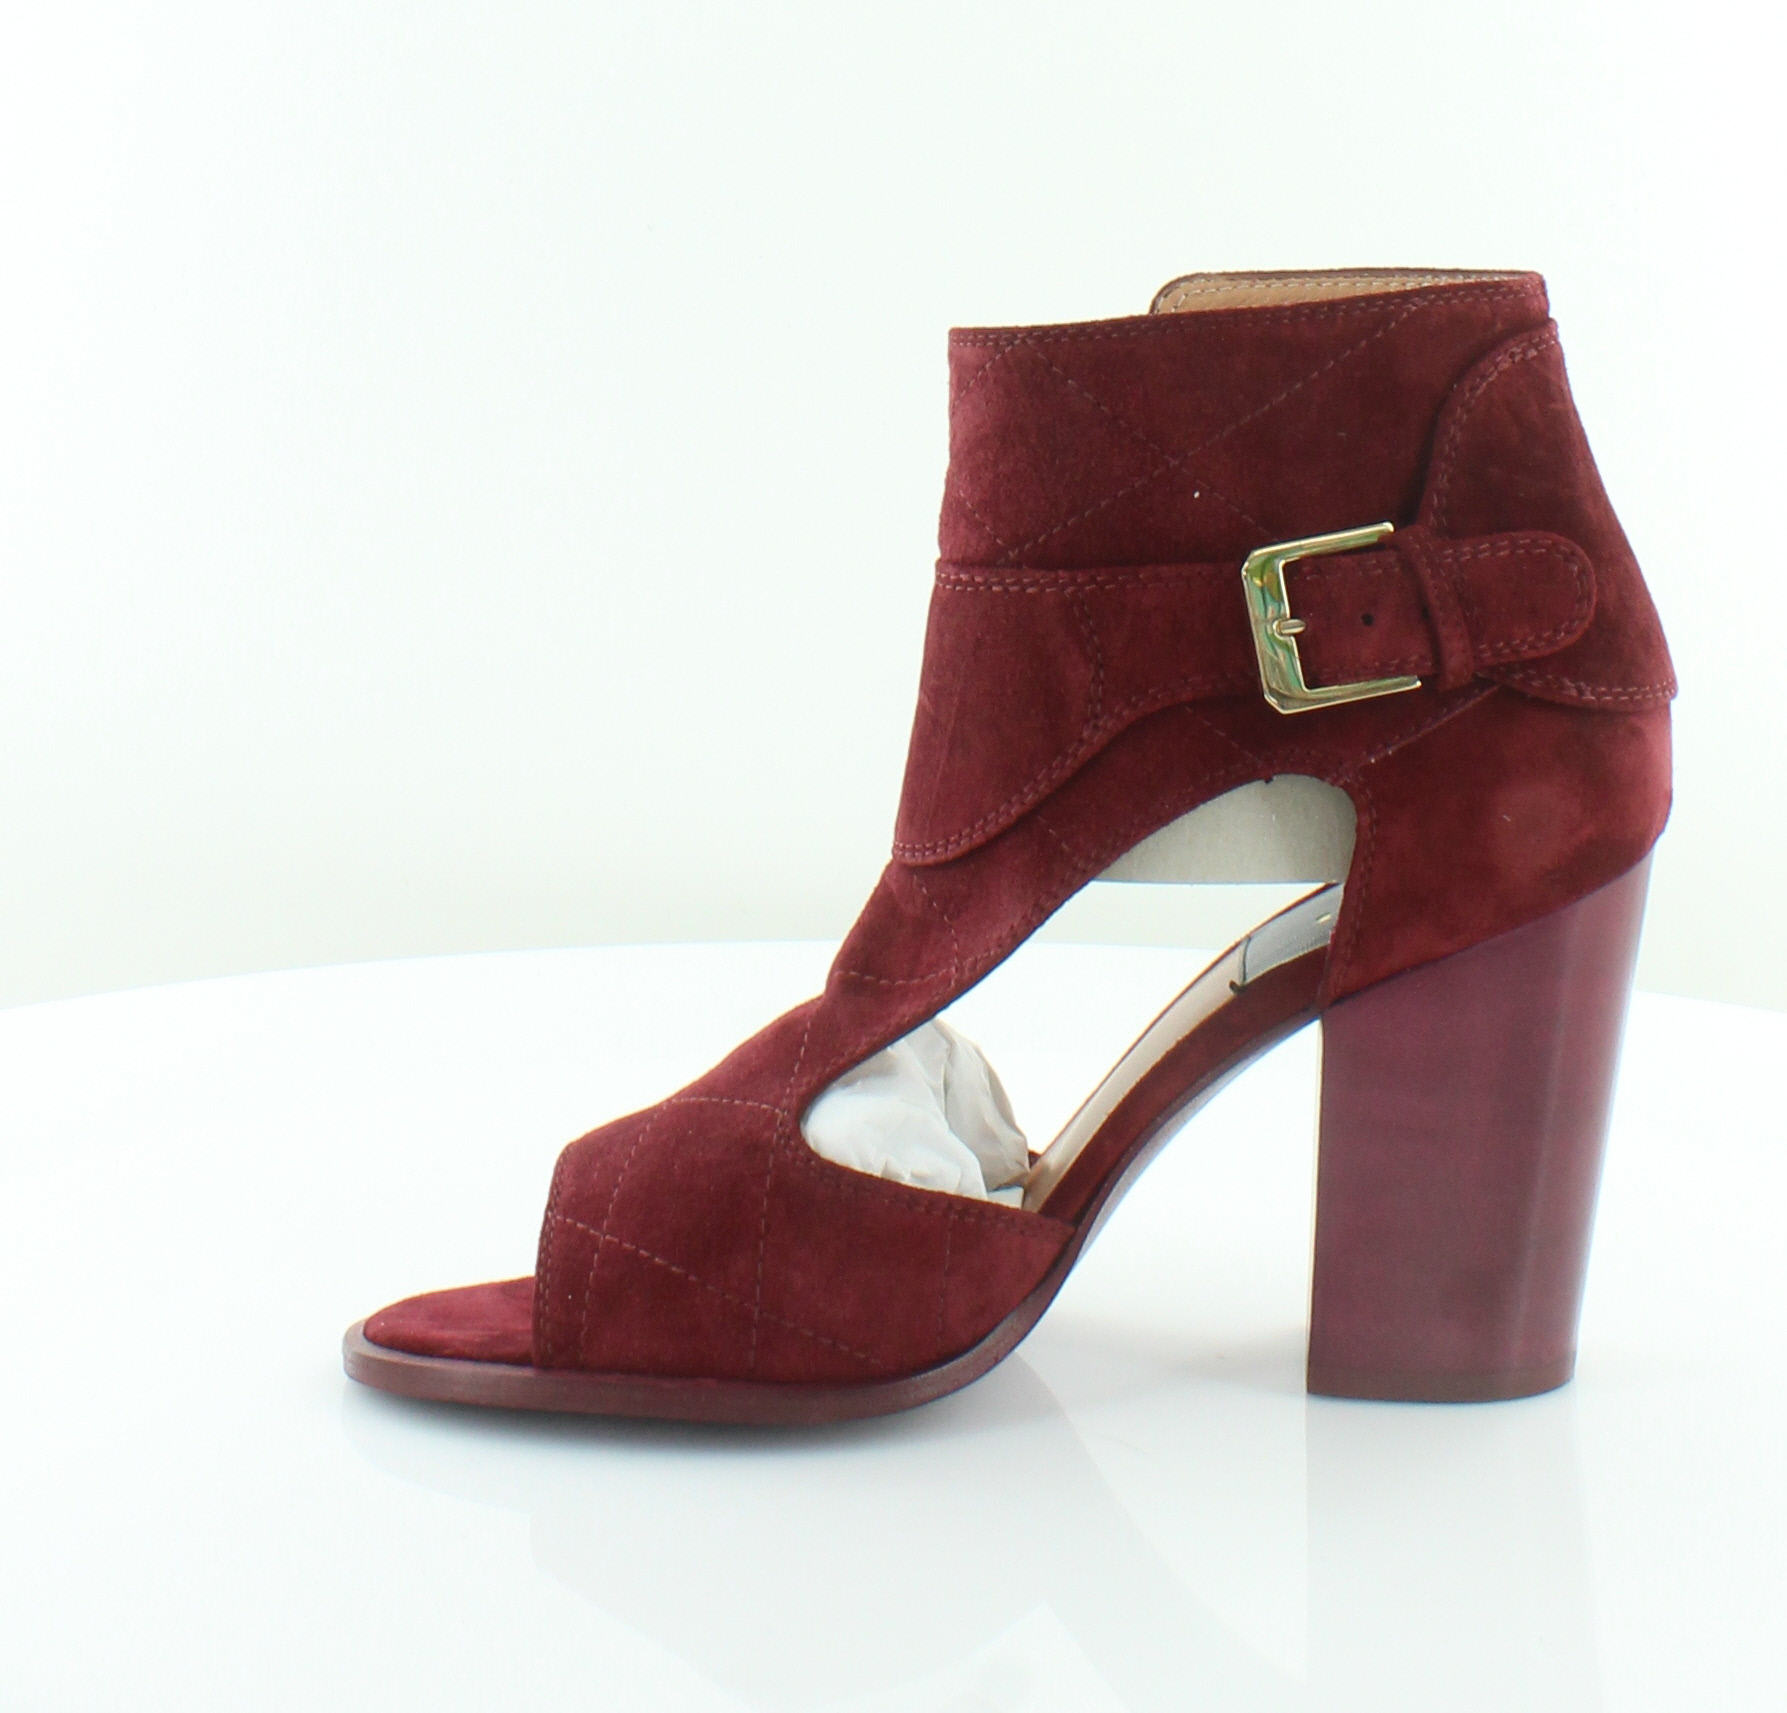 Laurence dacade Deric Deric Deric rouge femmes chaussures Taille 7 M Heels MSRP  795 138cfc